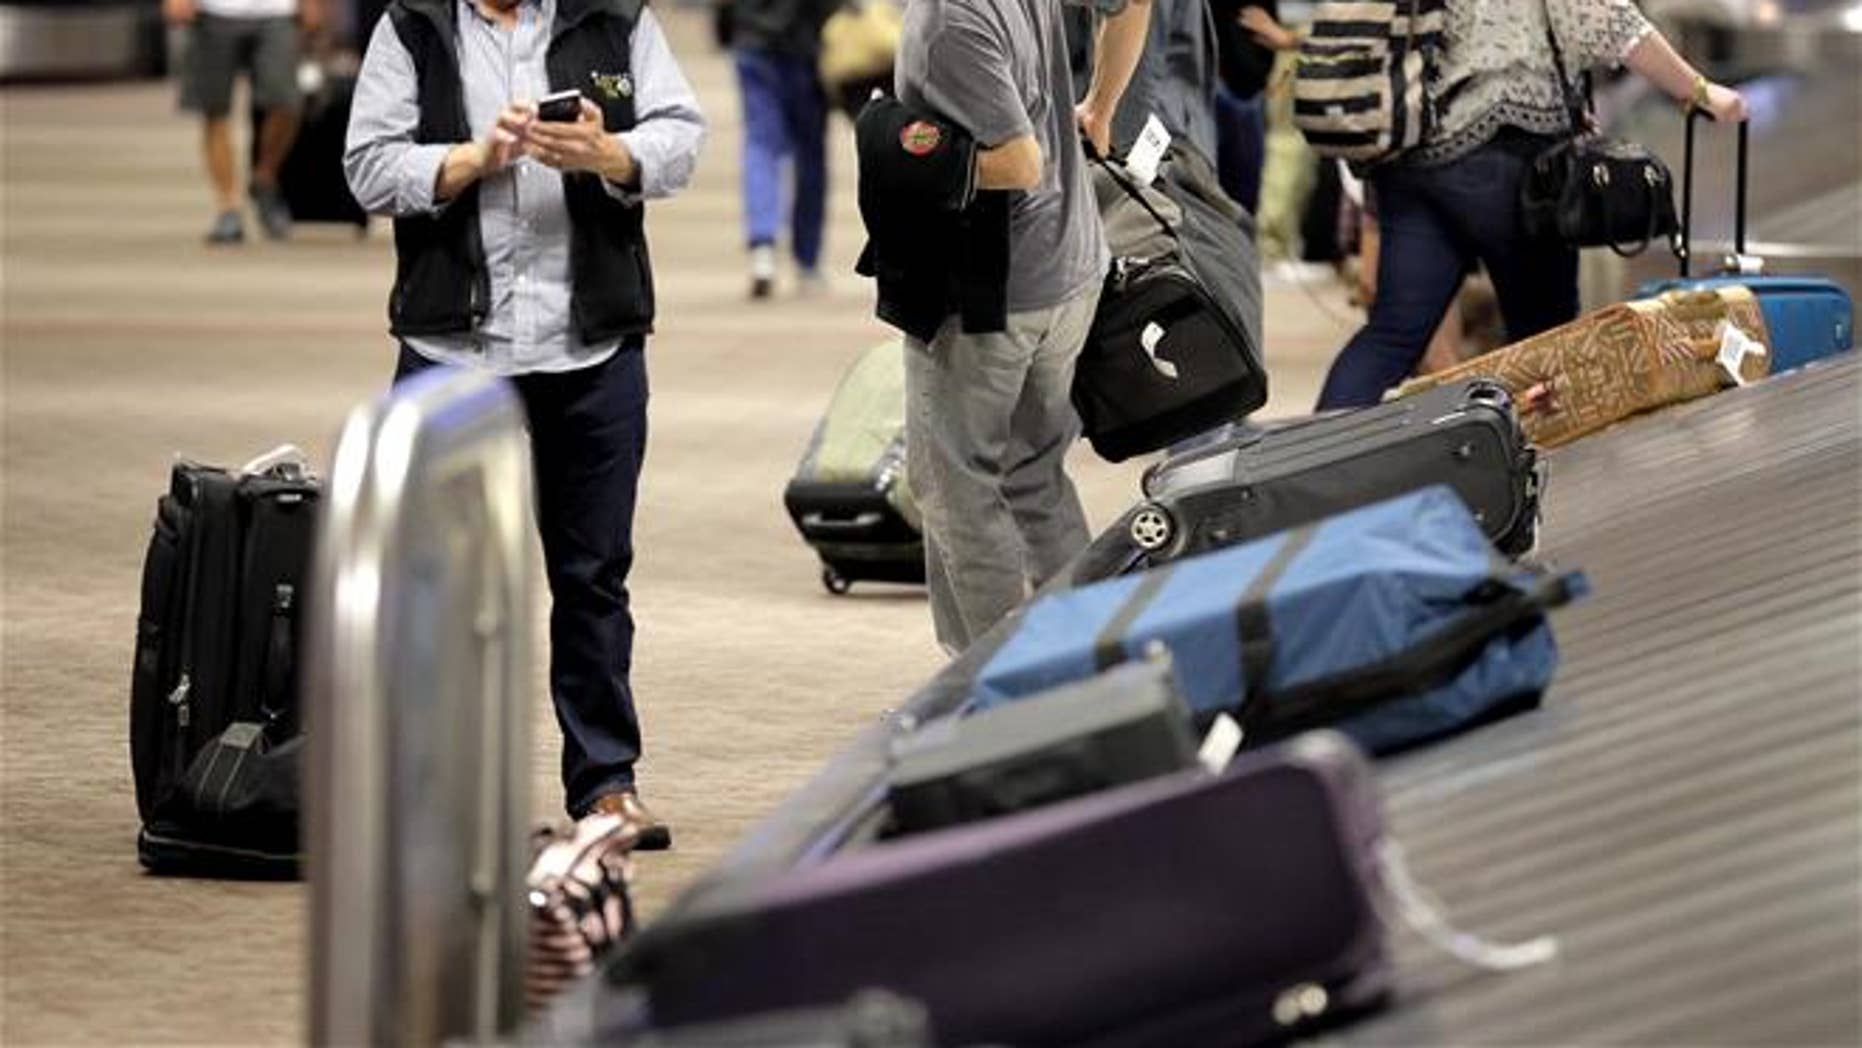 Checked luggage is shown in this file photo.